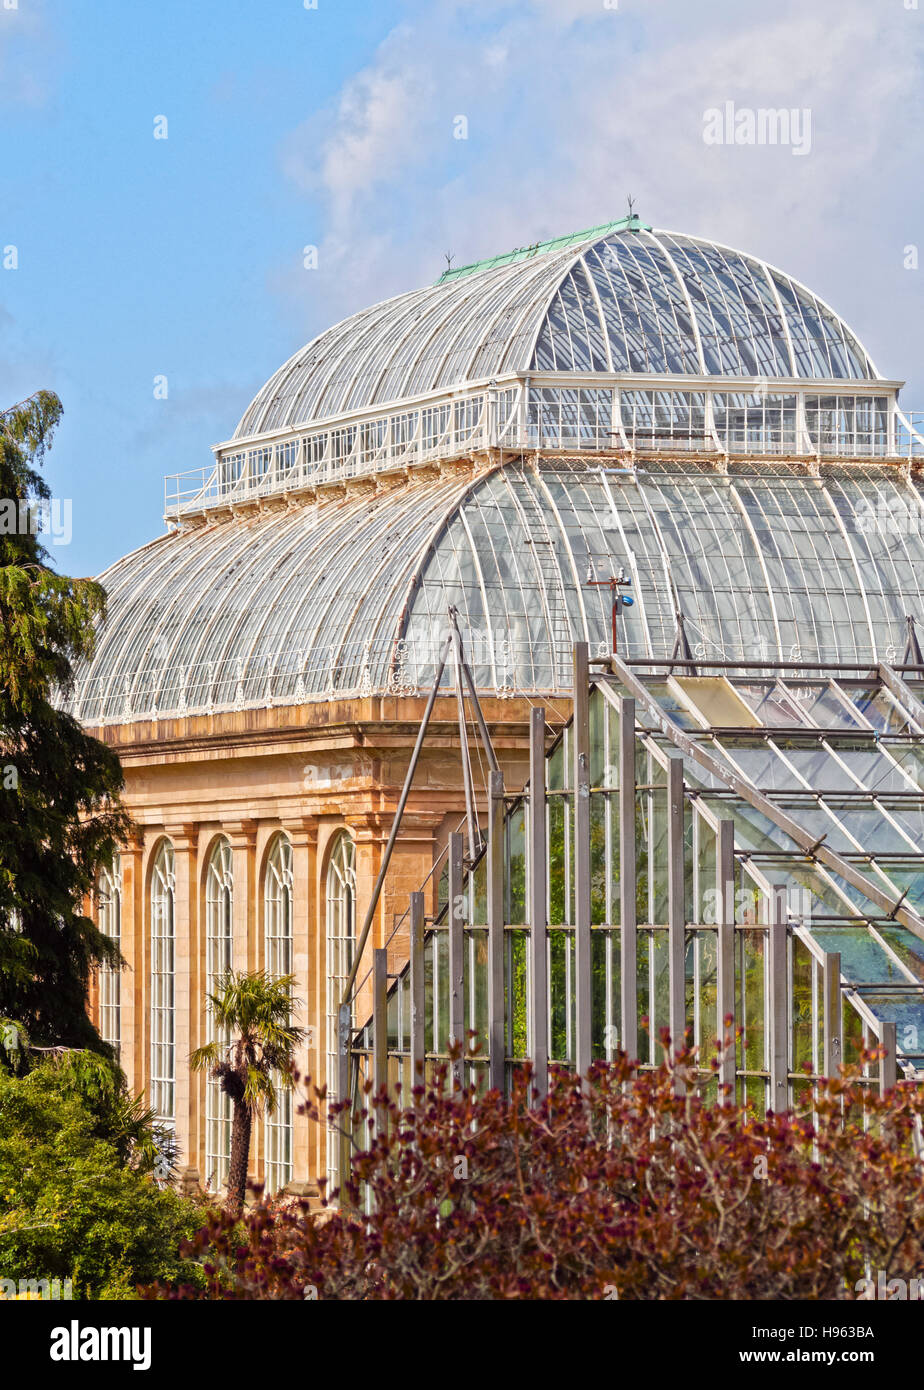 UK, Scotland, Lothian, Edinburgh, View of the Royal Botanic Gardens. - Stock Image